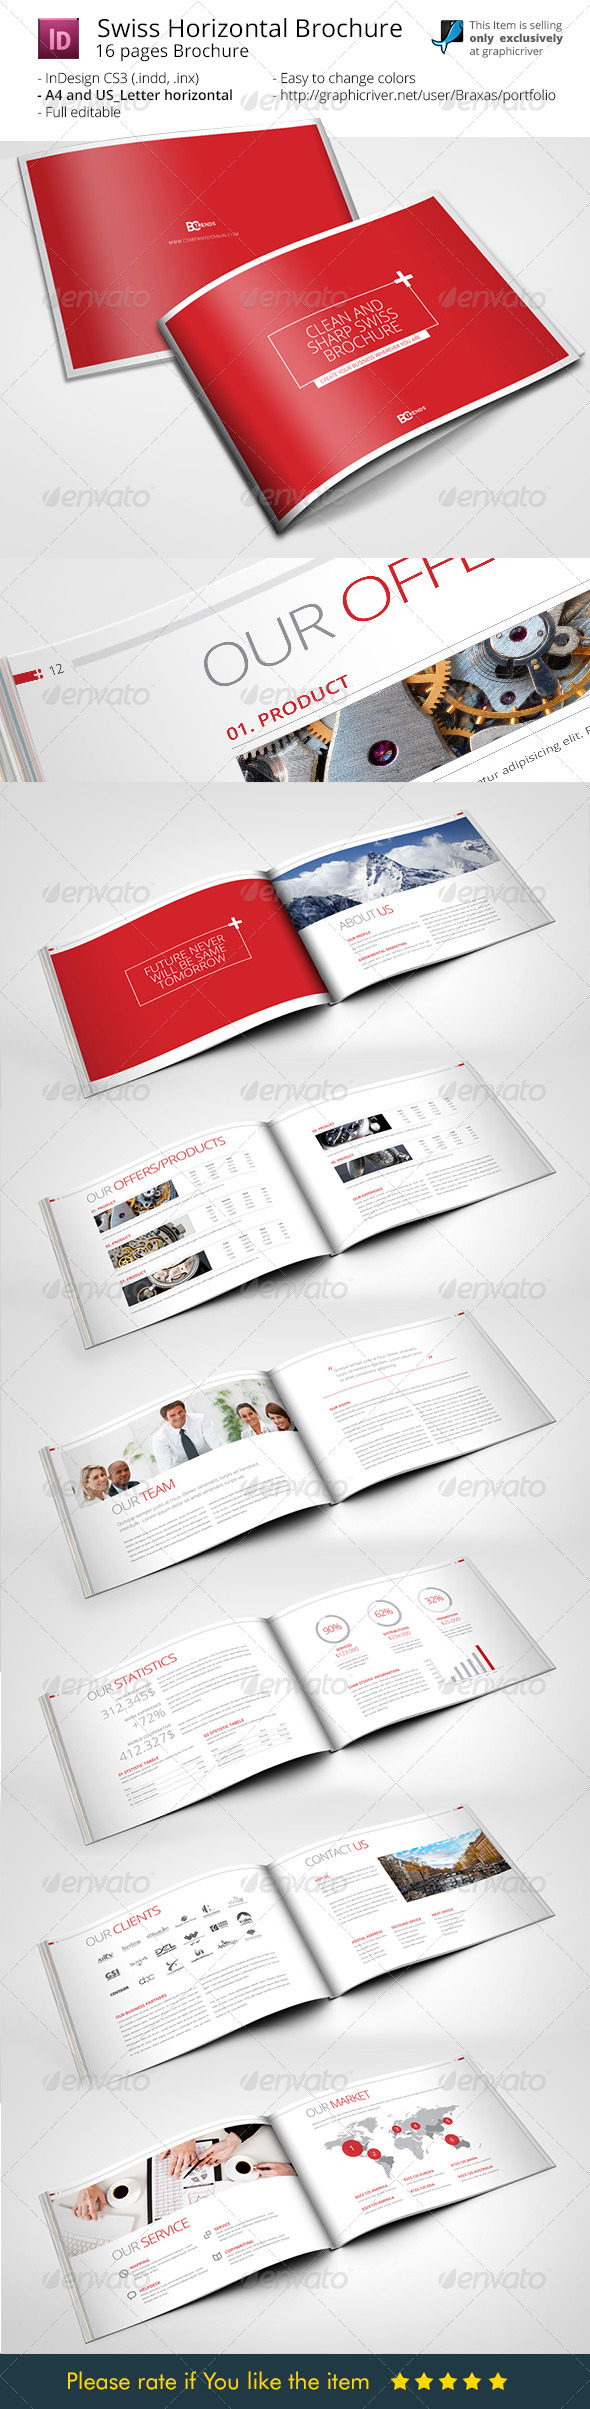 informational brochure template - swiss brochure template by braxas graphicriver